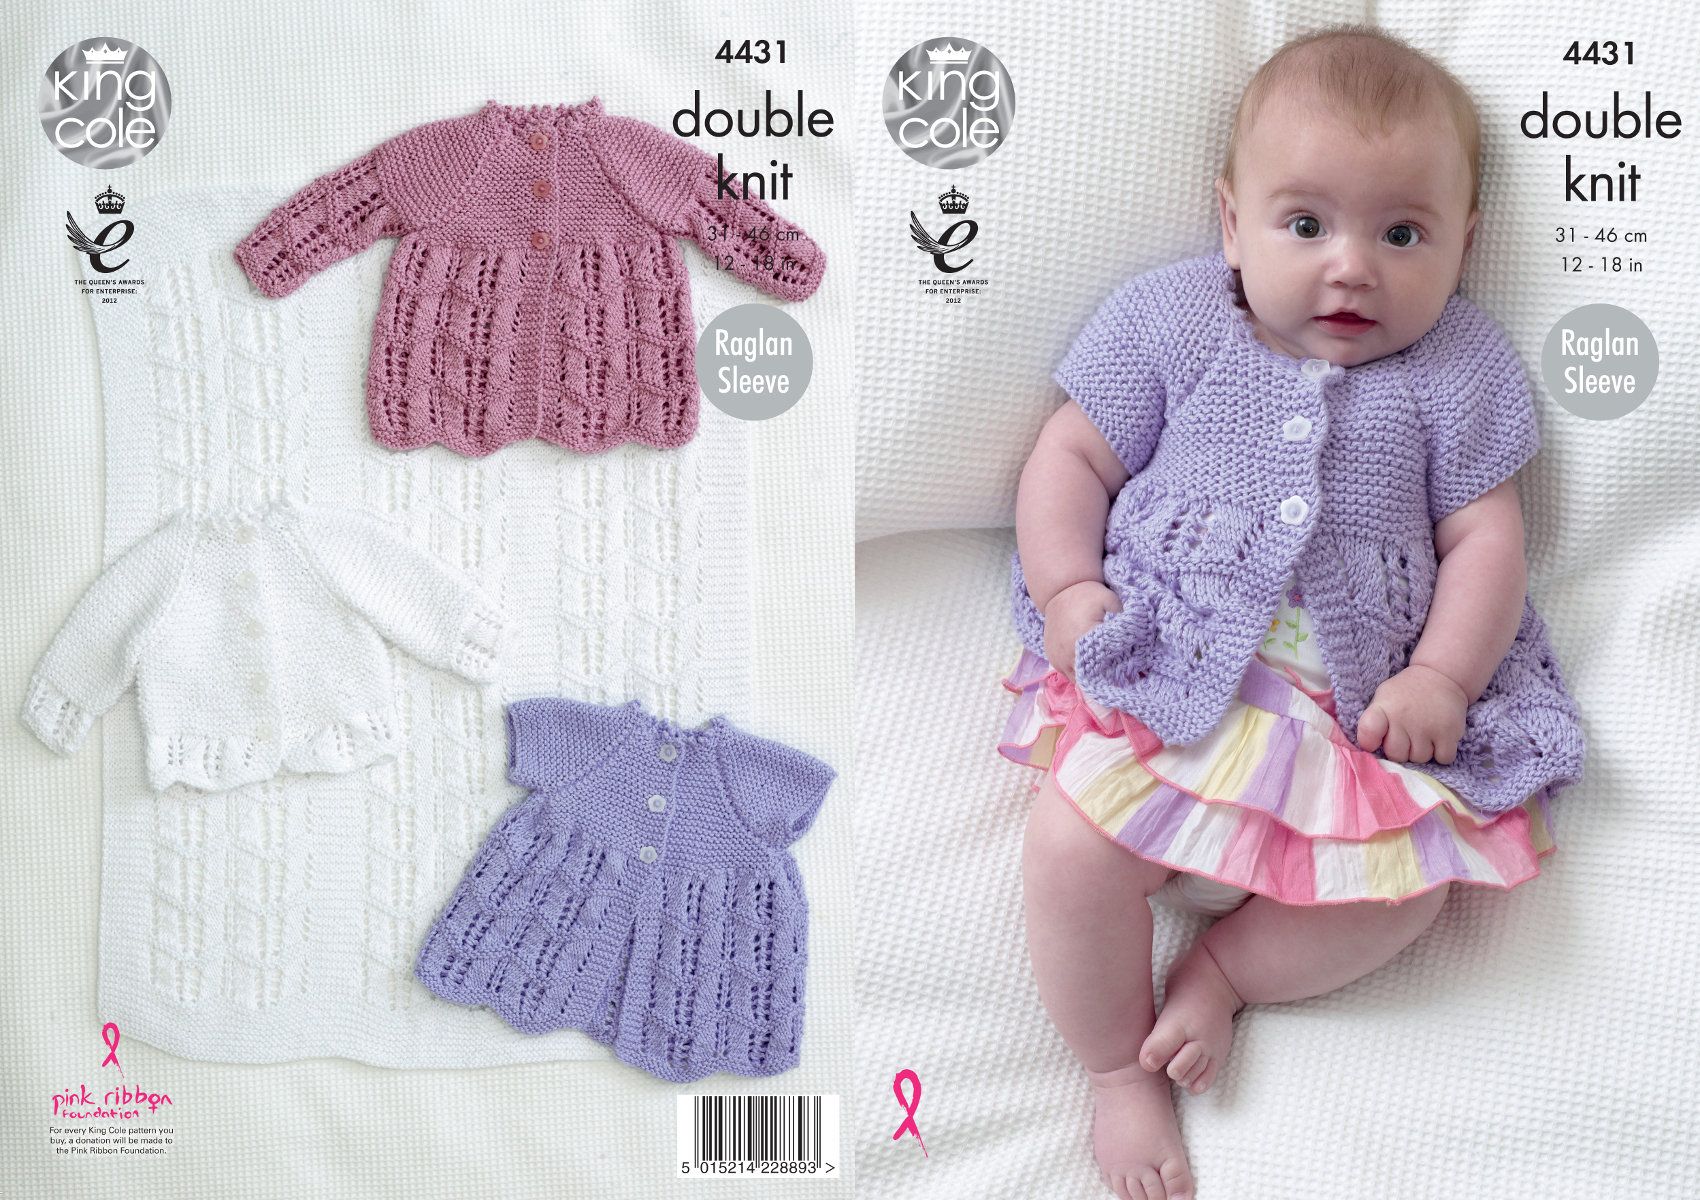 King cole baby double knitting pattern matinee coats cardigan king cole baby double knitting pattern matinee coats cardigan blanket dk 4431 bankloansurffo Image collections